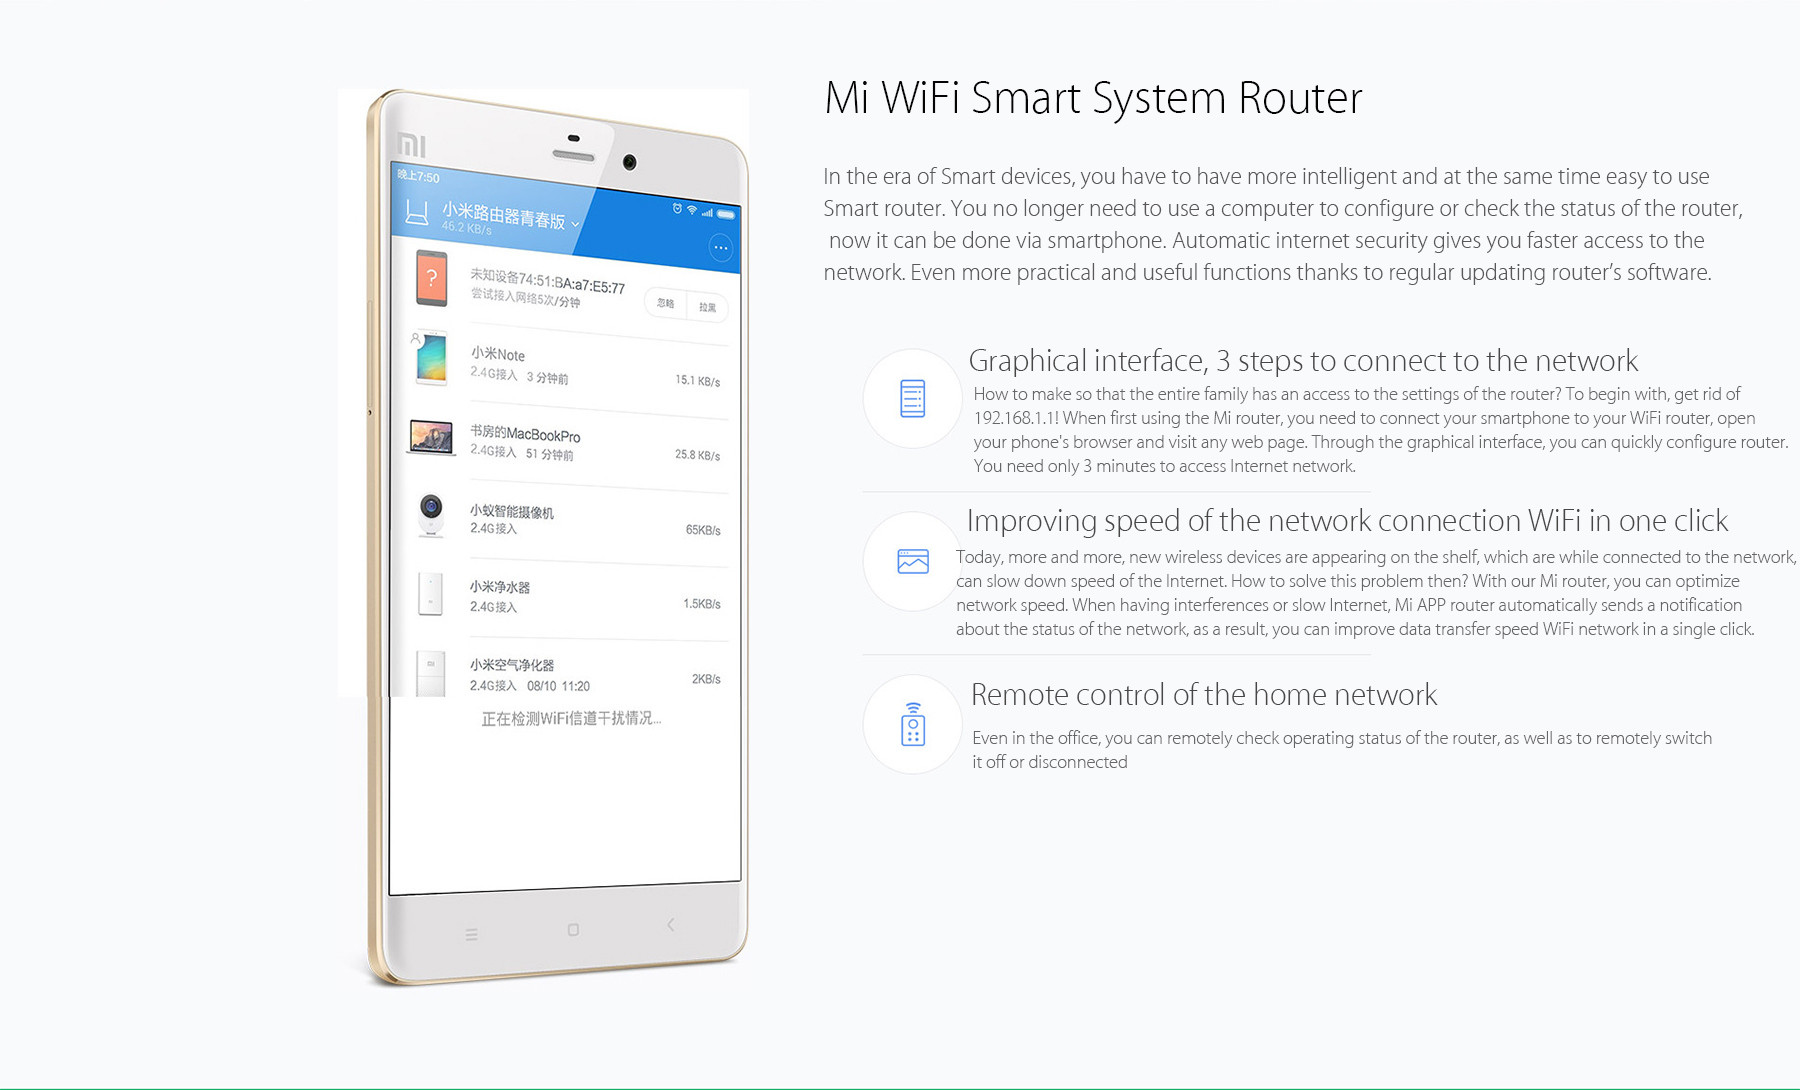 XiaoMi Mi WiFi Router Youth Edition 2.4GHz Band 300Mbps Wireless Repeater for iPhone 6S / 6S Plus / 6 / 6 Plus / iPad Pro / Samsung S6 / Edge S6 / HTC ONE M9 / HUAWEI P8